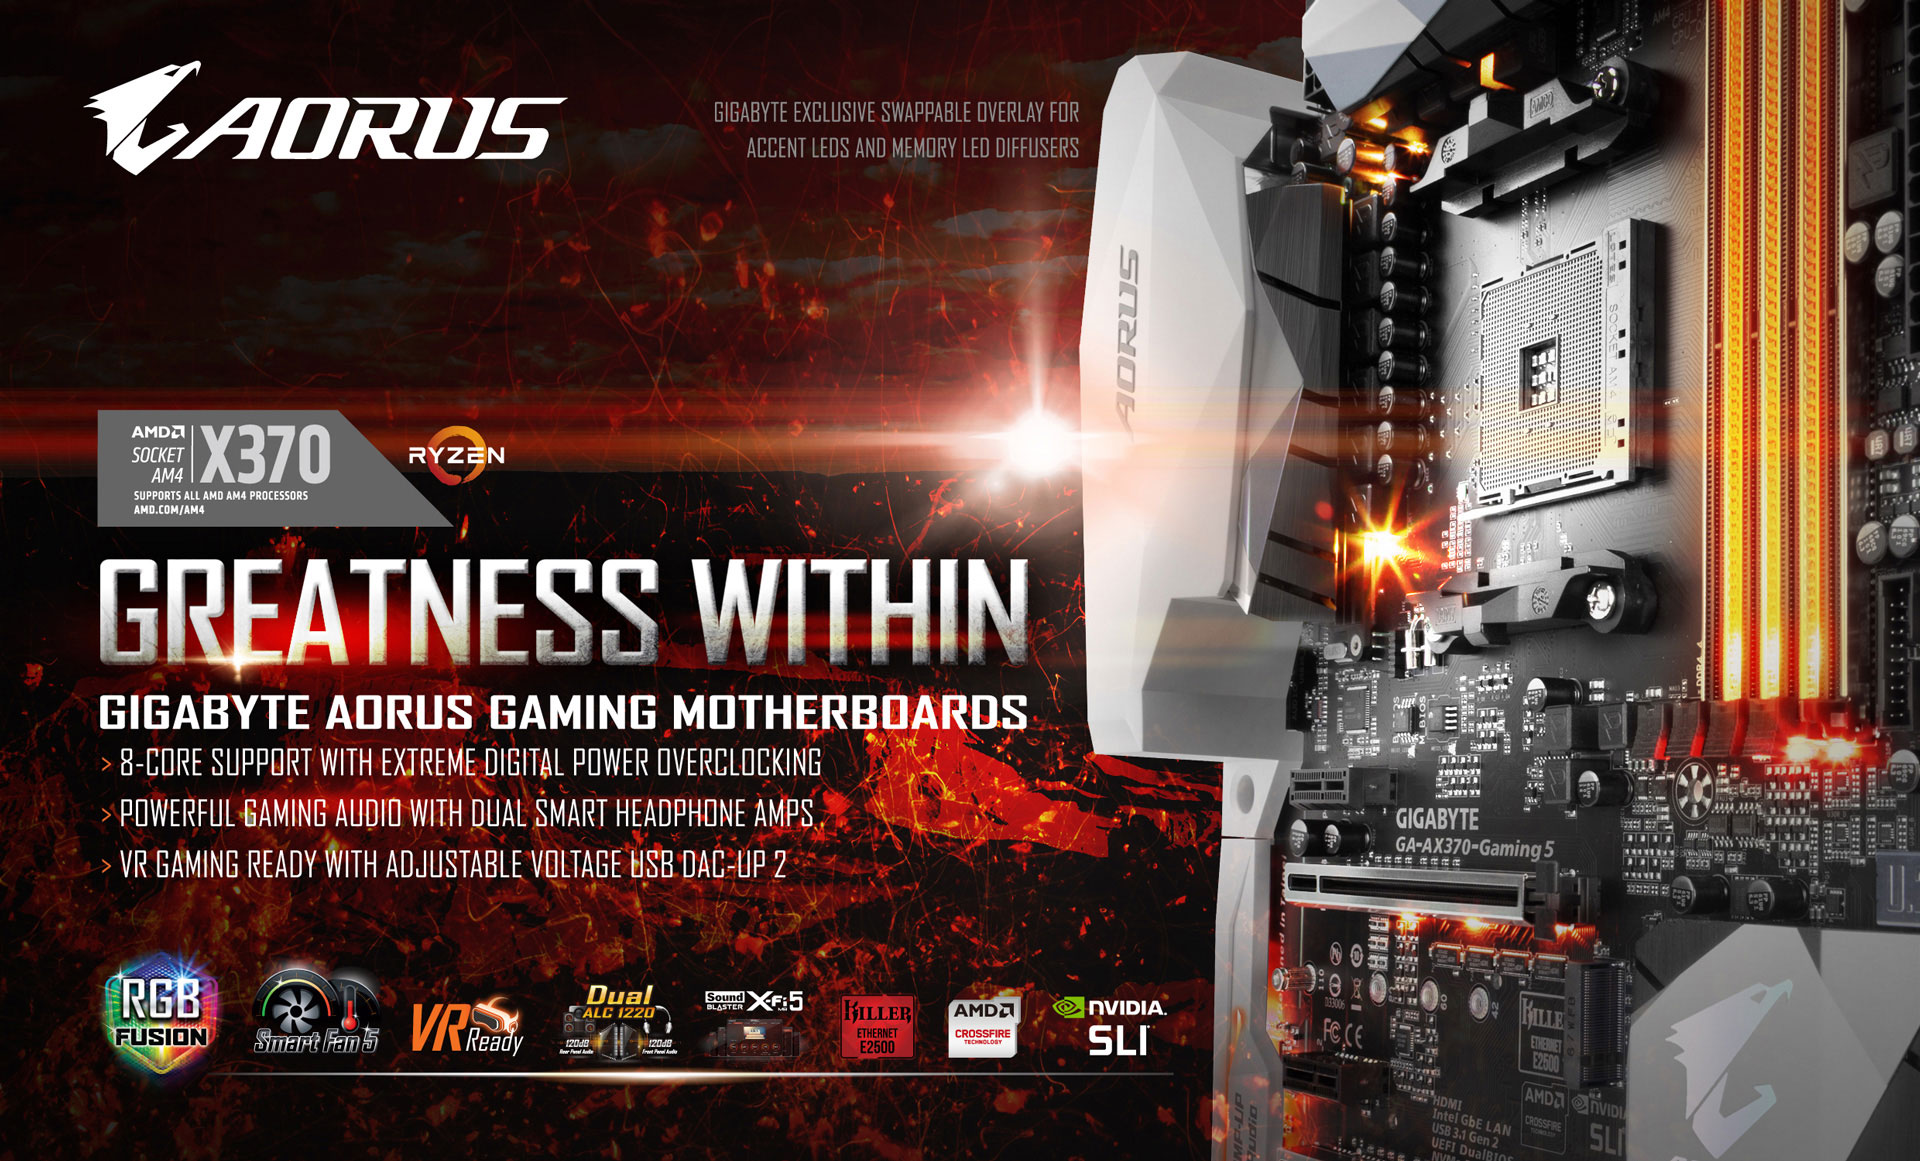 AMD Ryzen CPUs Are Burning Up on Gigabyte's X370 Motherboards